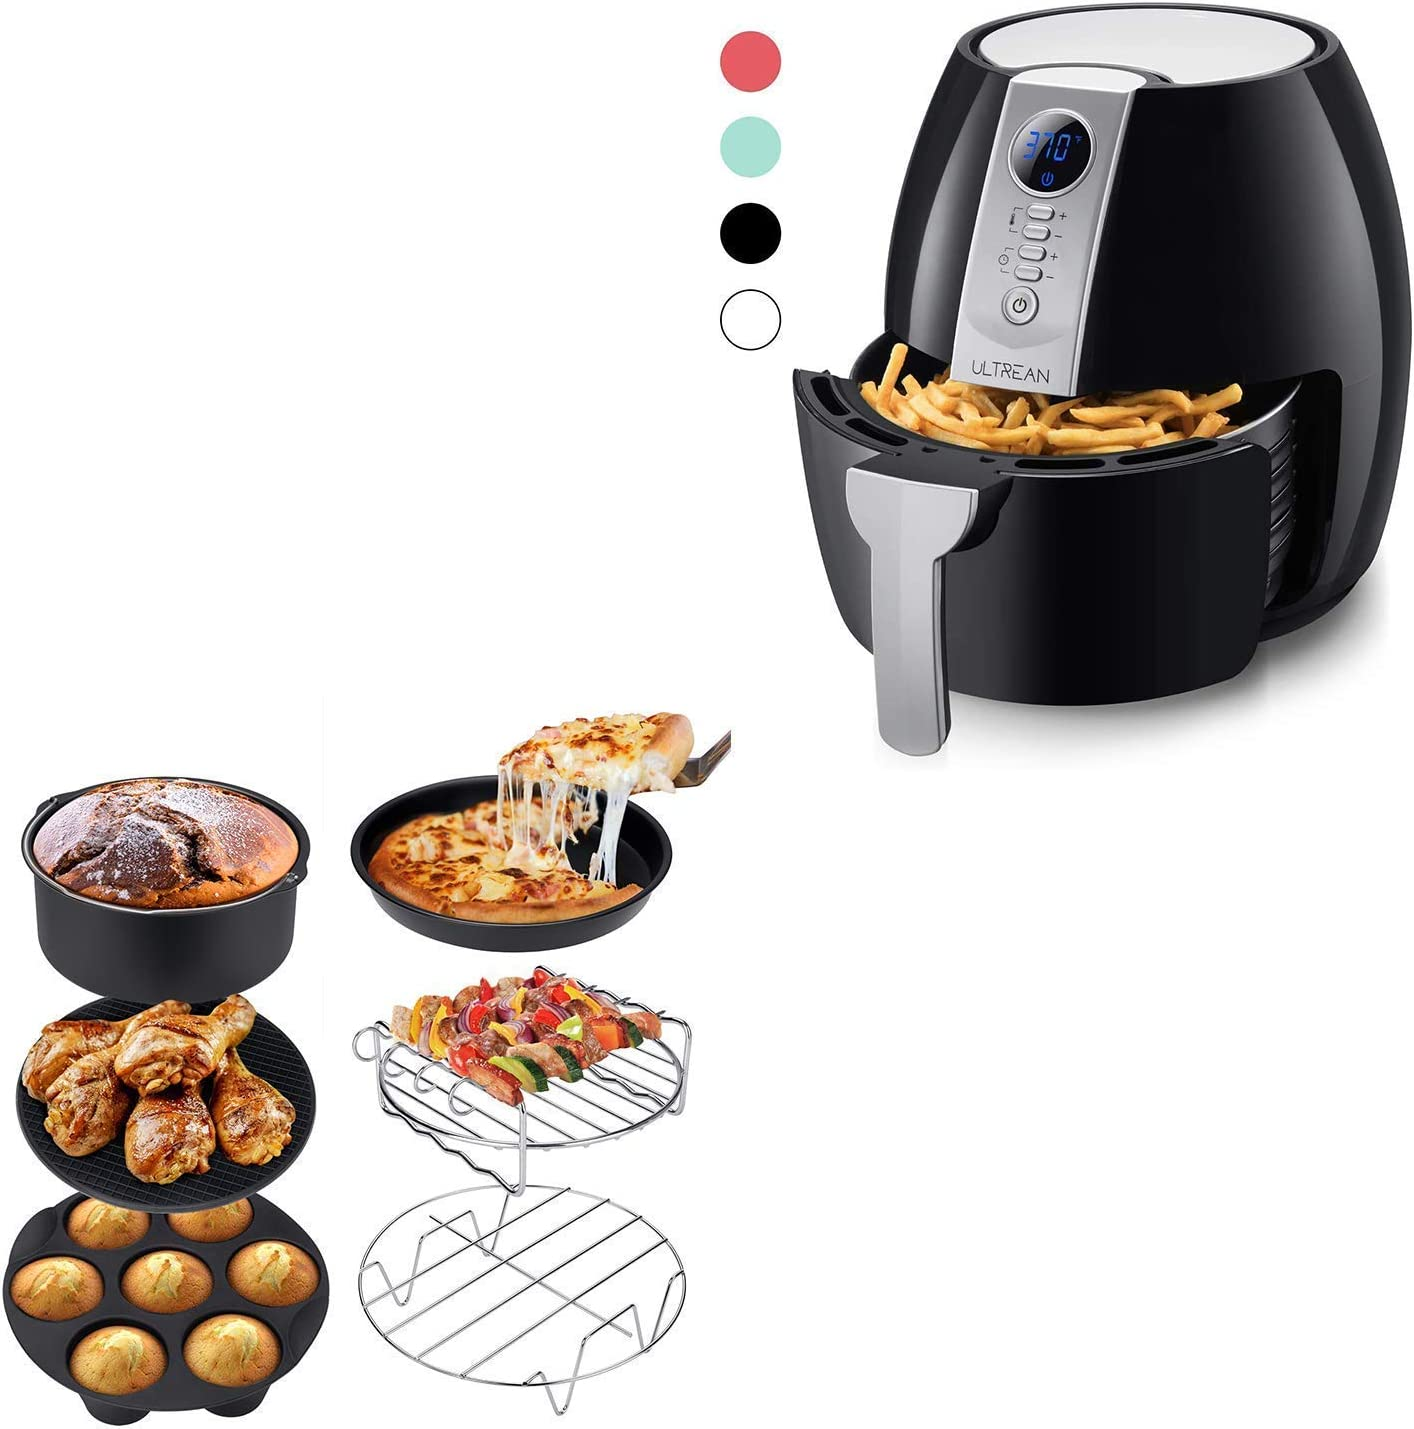 Ultrean Air Fryer, 4.2 Quart (4 Liter) Electric Hot Air Fryers Oven Oilless Cooker and Air Fryer Accessories, Set of 6 Fit All 5.8Qt,6Qt Air Fryers, BPA Free, FDA Compliant, XL